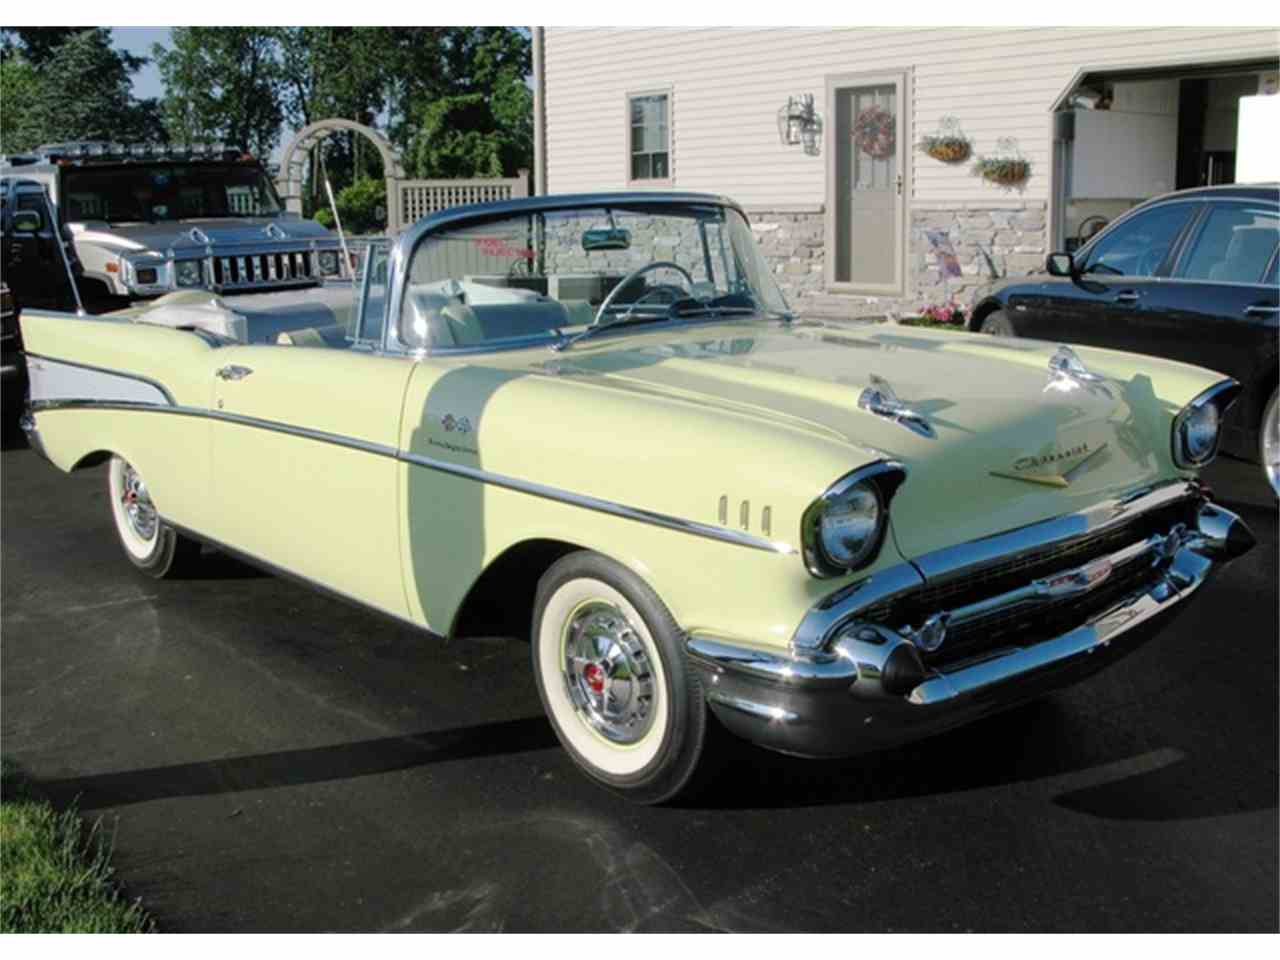 1956 chevrolet bel air for sale on classiccars com 74 - 1957 Chevrolet Bel Air For Sale Cc 937970